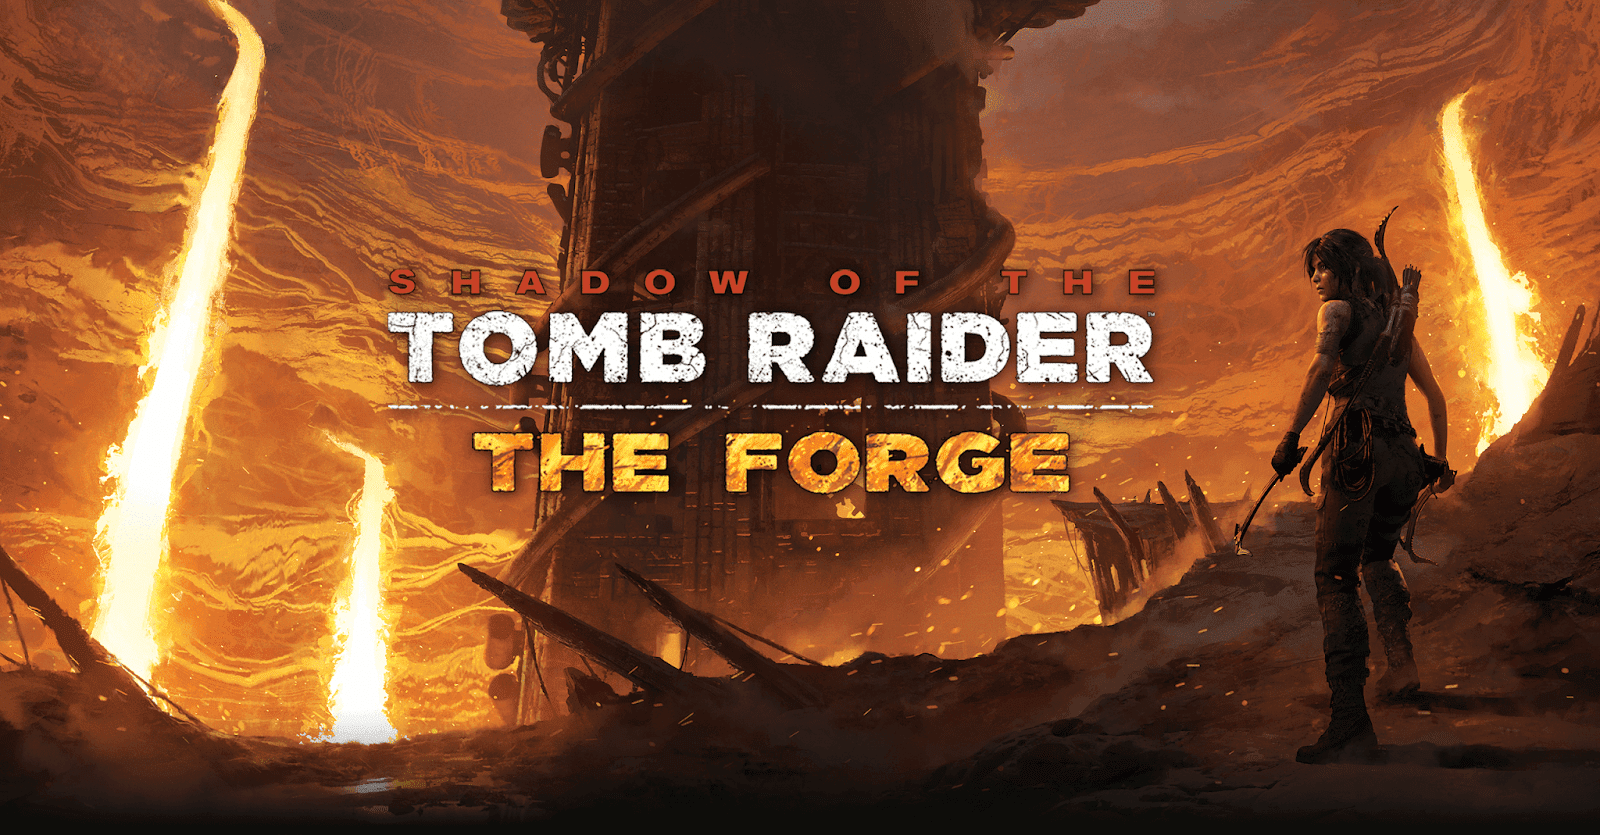 Shadow Of The Tomb Raider New Patch Notes Released For PC, Mainly Focus On The Forge DLC